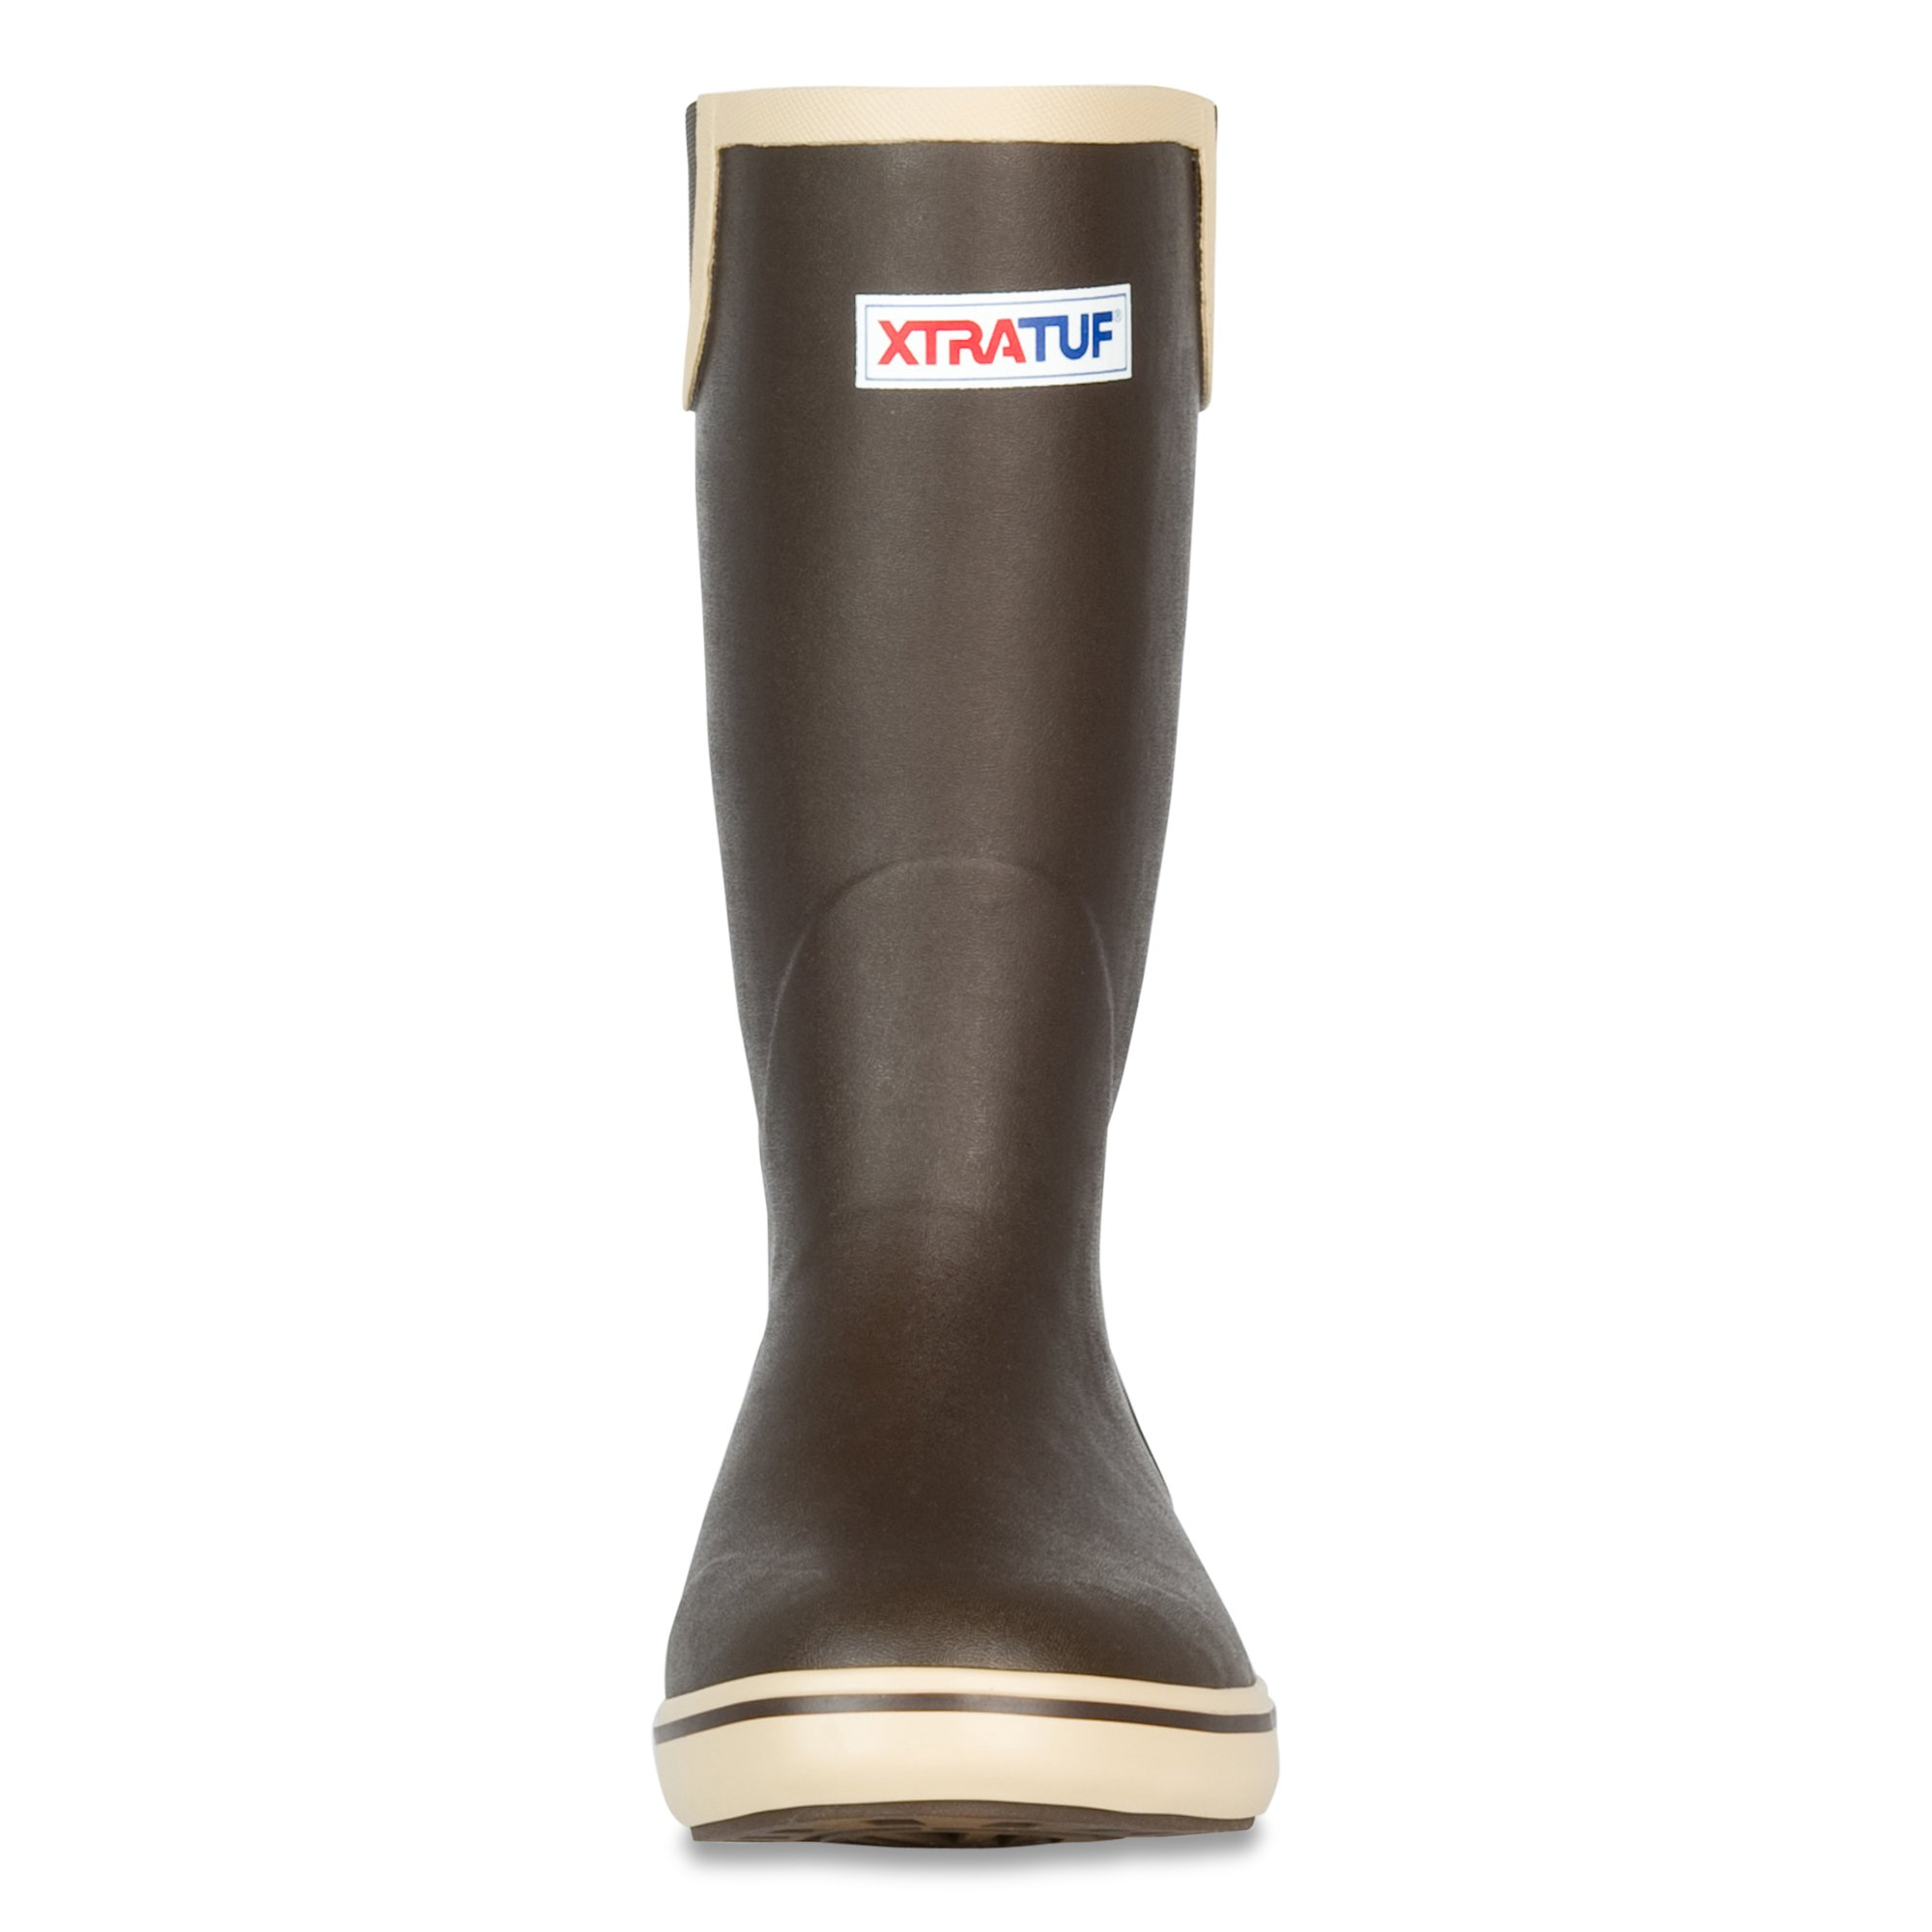 XTRATUF Performance Series 12'' Men's Full Rubber Deck Boots, Chocolate & Tan (22702) by Xtratuf (Image #2)